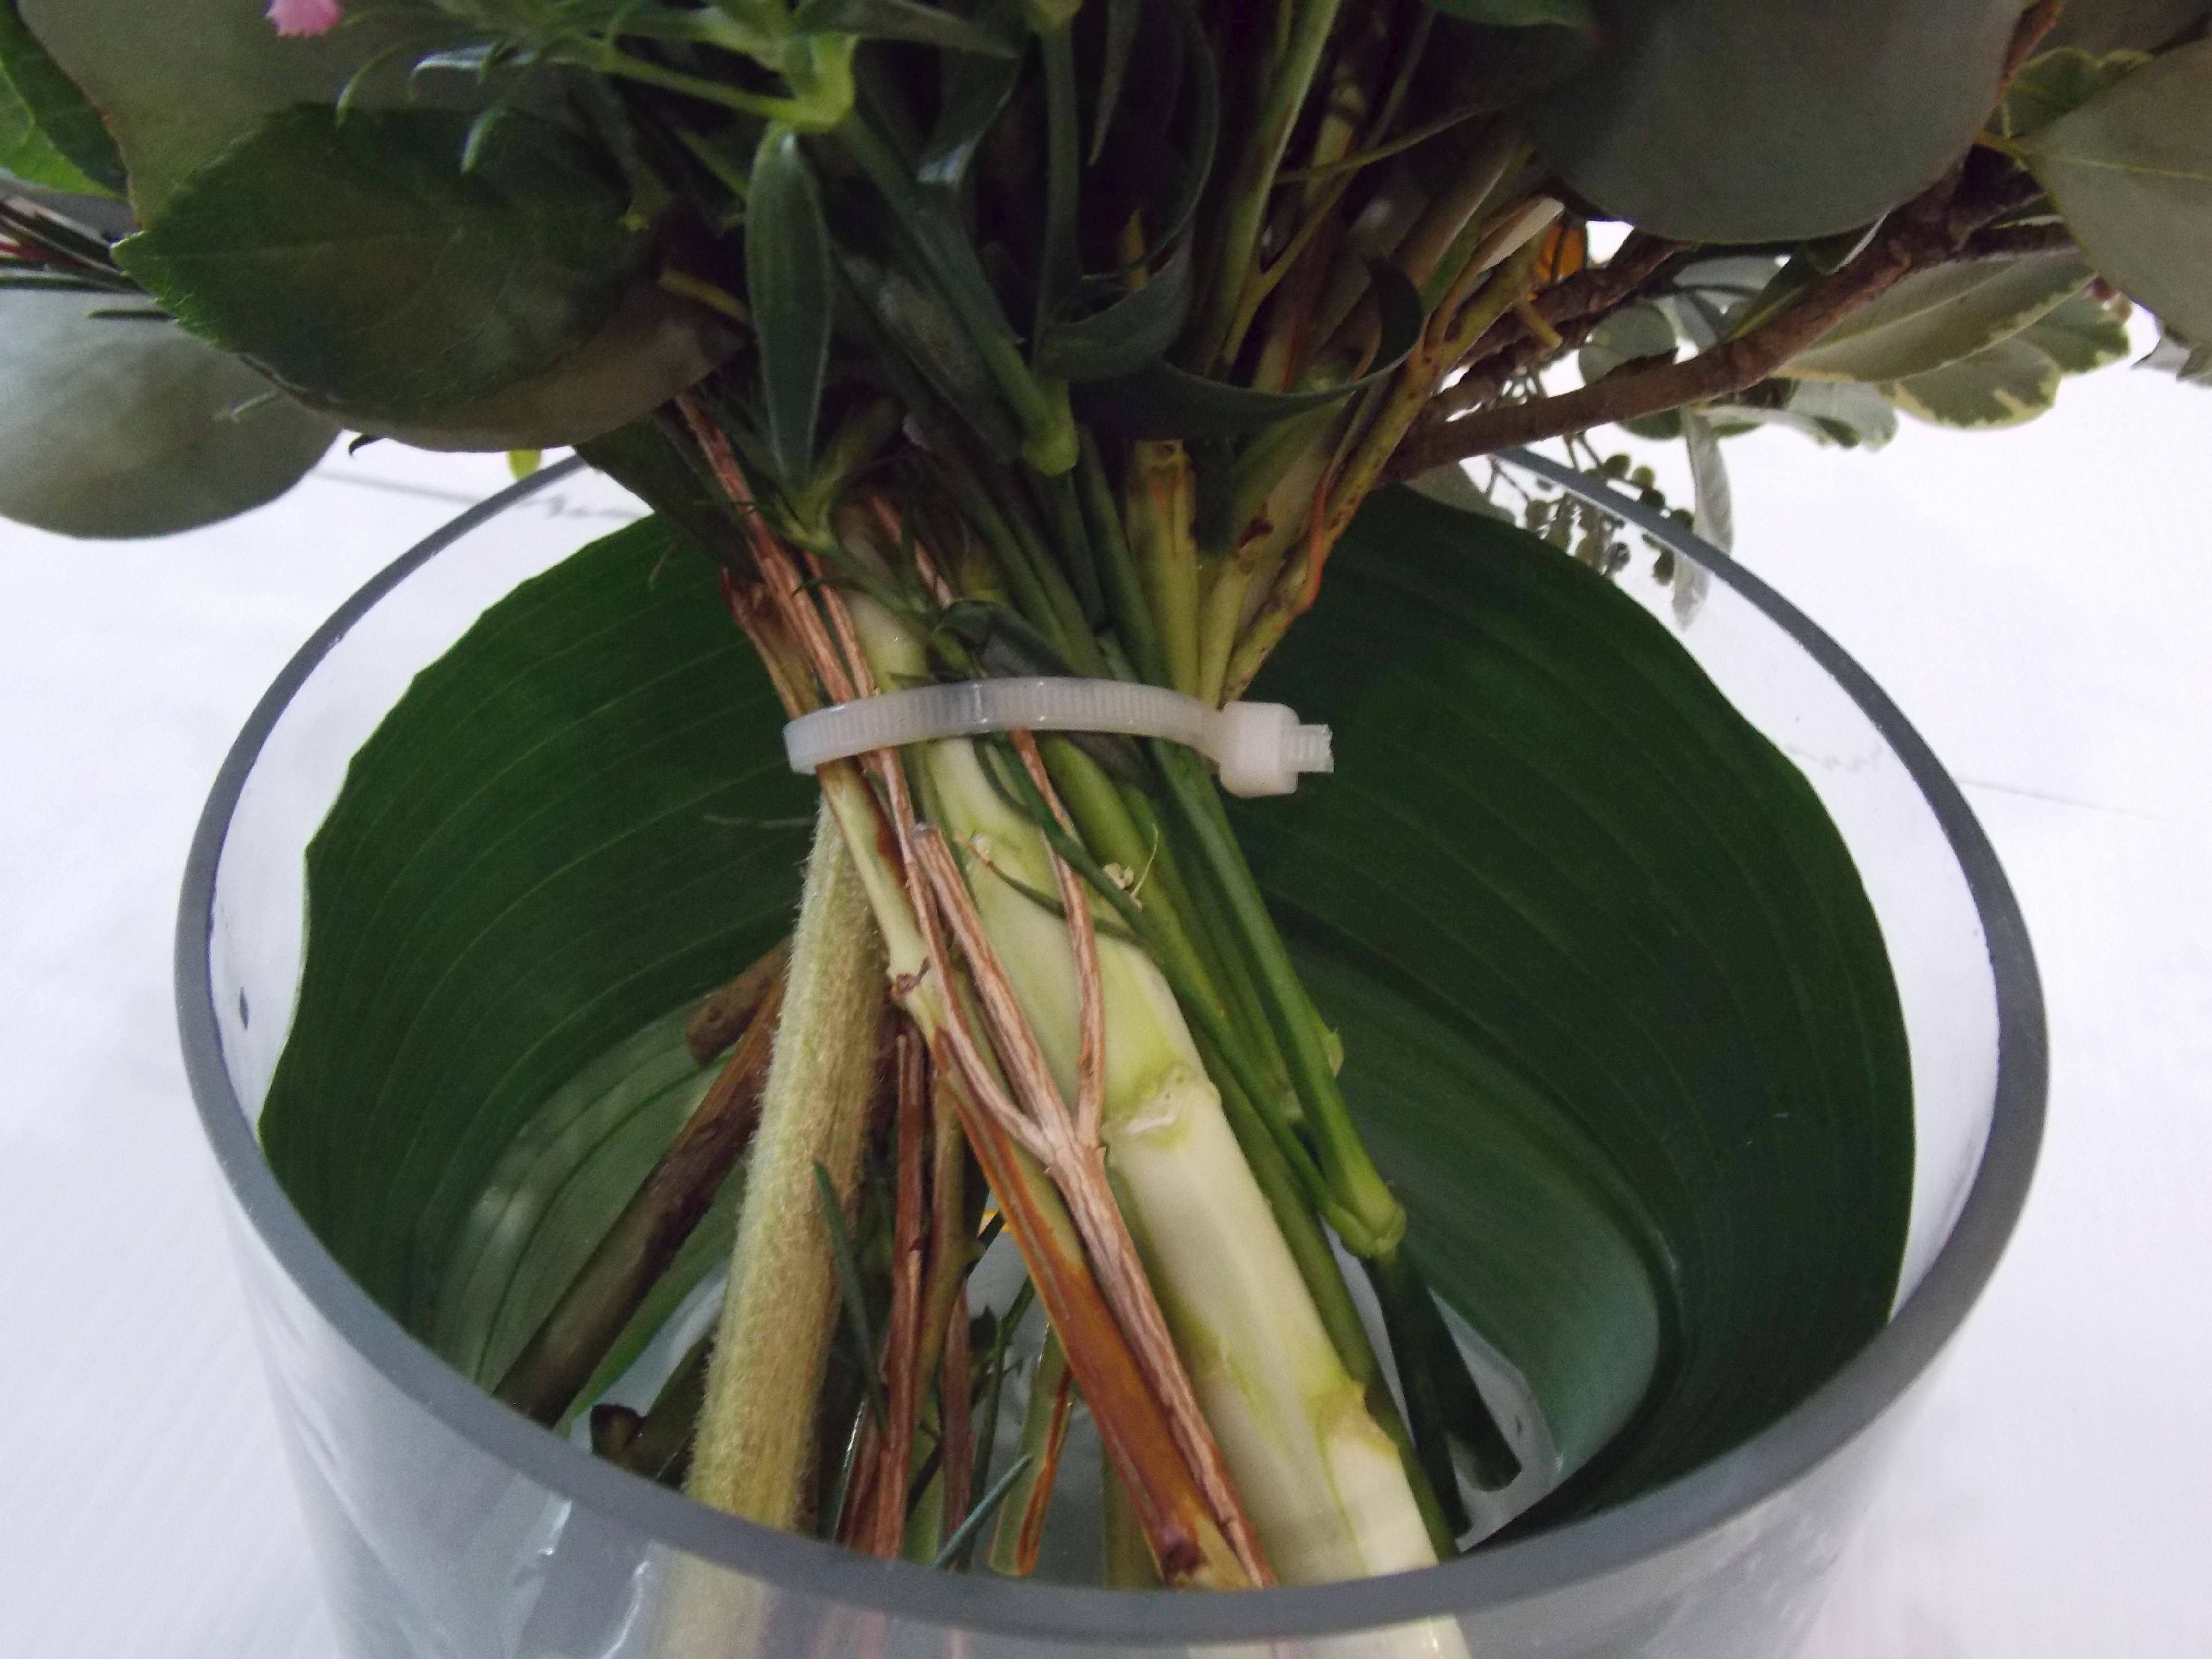 When your vase is too wide to hold the bouquet tightly in place: Use a nylon zip tie, wrapping it around the bouquet's stems and cutting off the tie's excess length. In order to hide the tie, either use ribbon, or try fresh, Aspidistra foliage. The large leafs can be 2-3 inches wide and do well under water. Simply cut the stems off and loop the foliage around the vase.